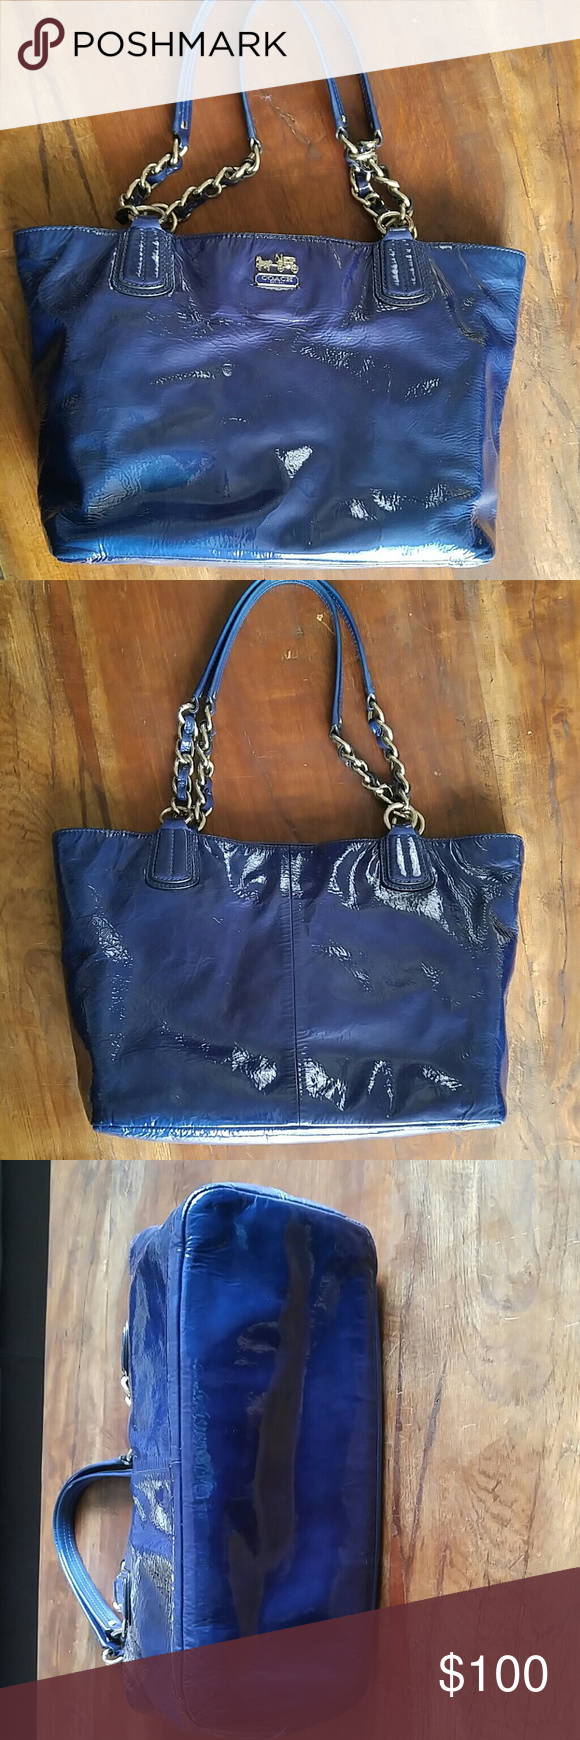 Bag Coach Patent Leather